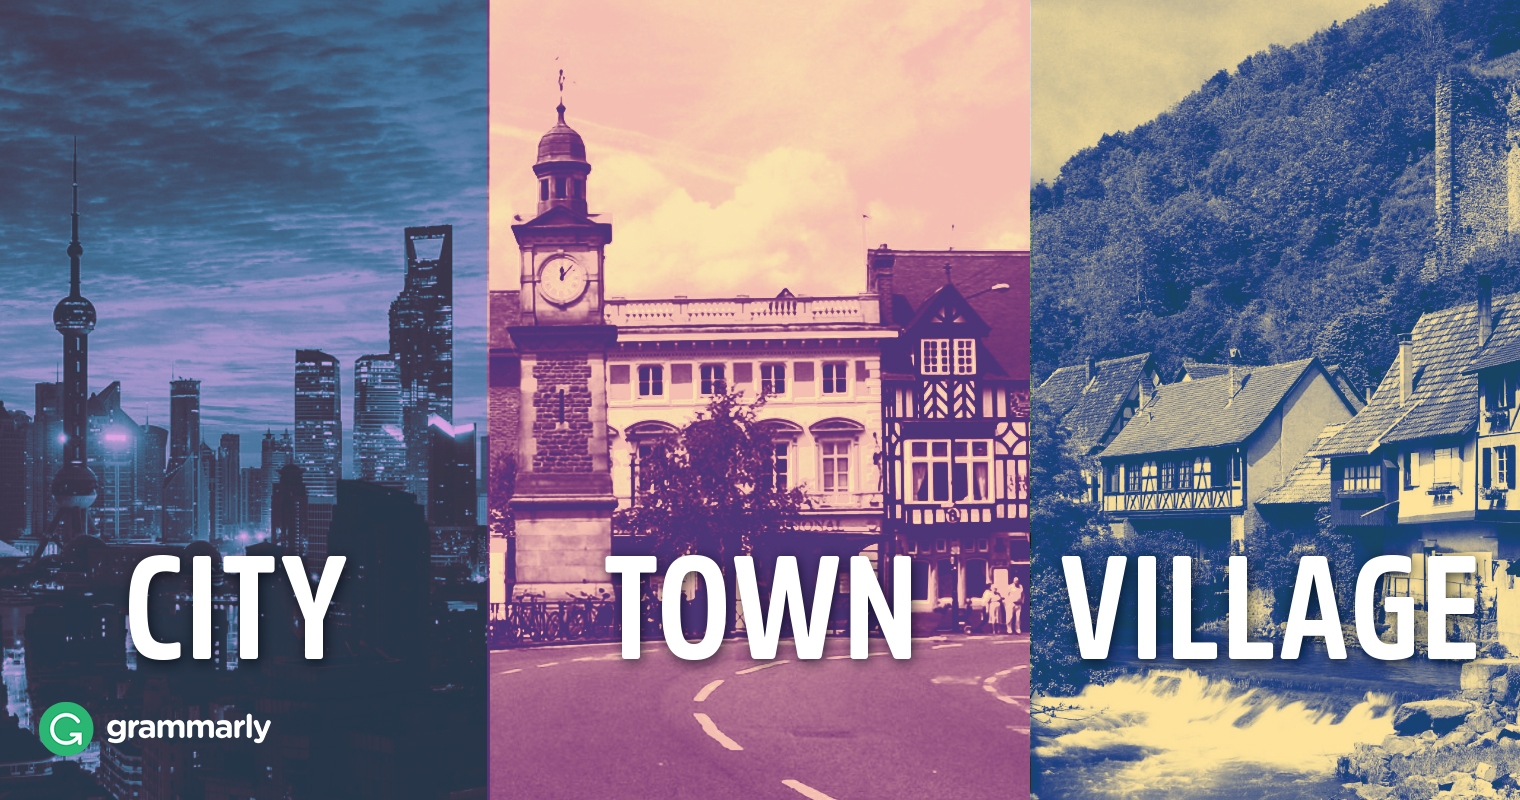 City, Town, and Village–What's the Difference? image